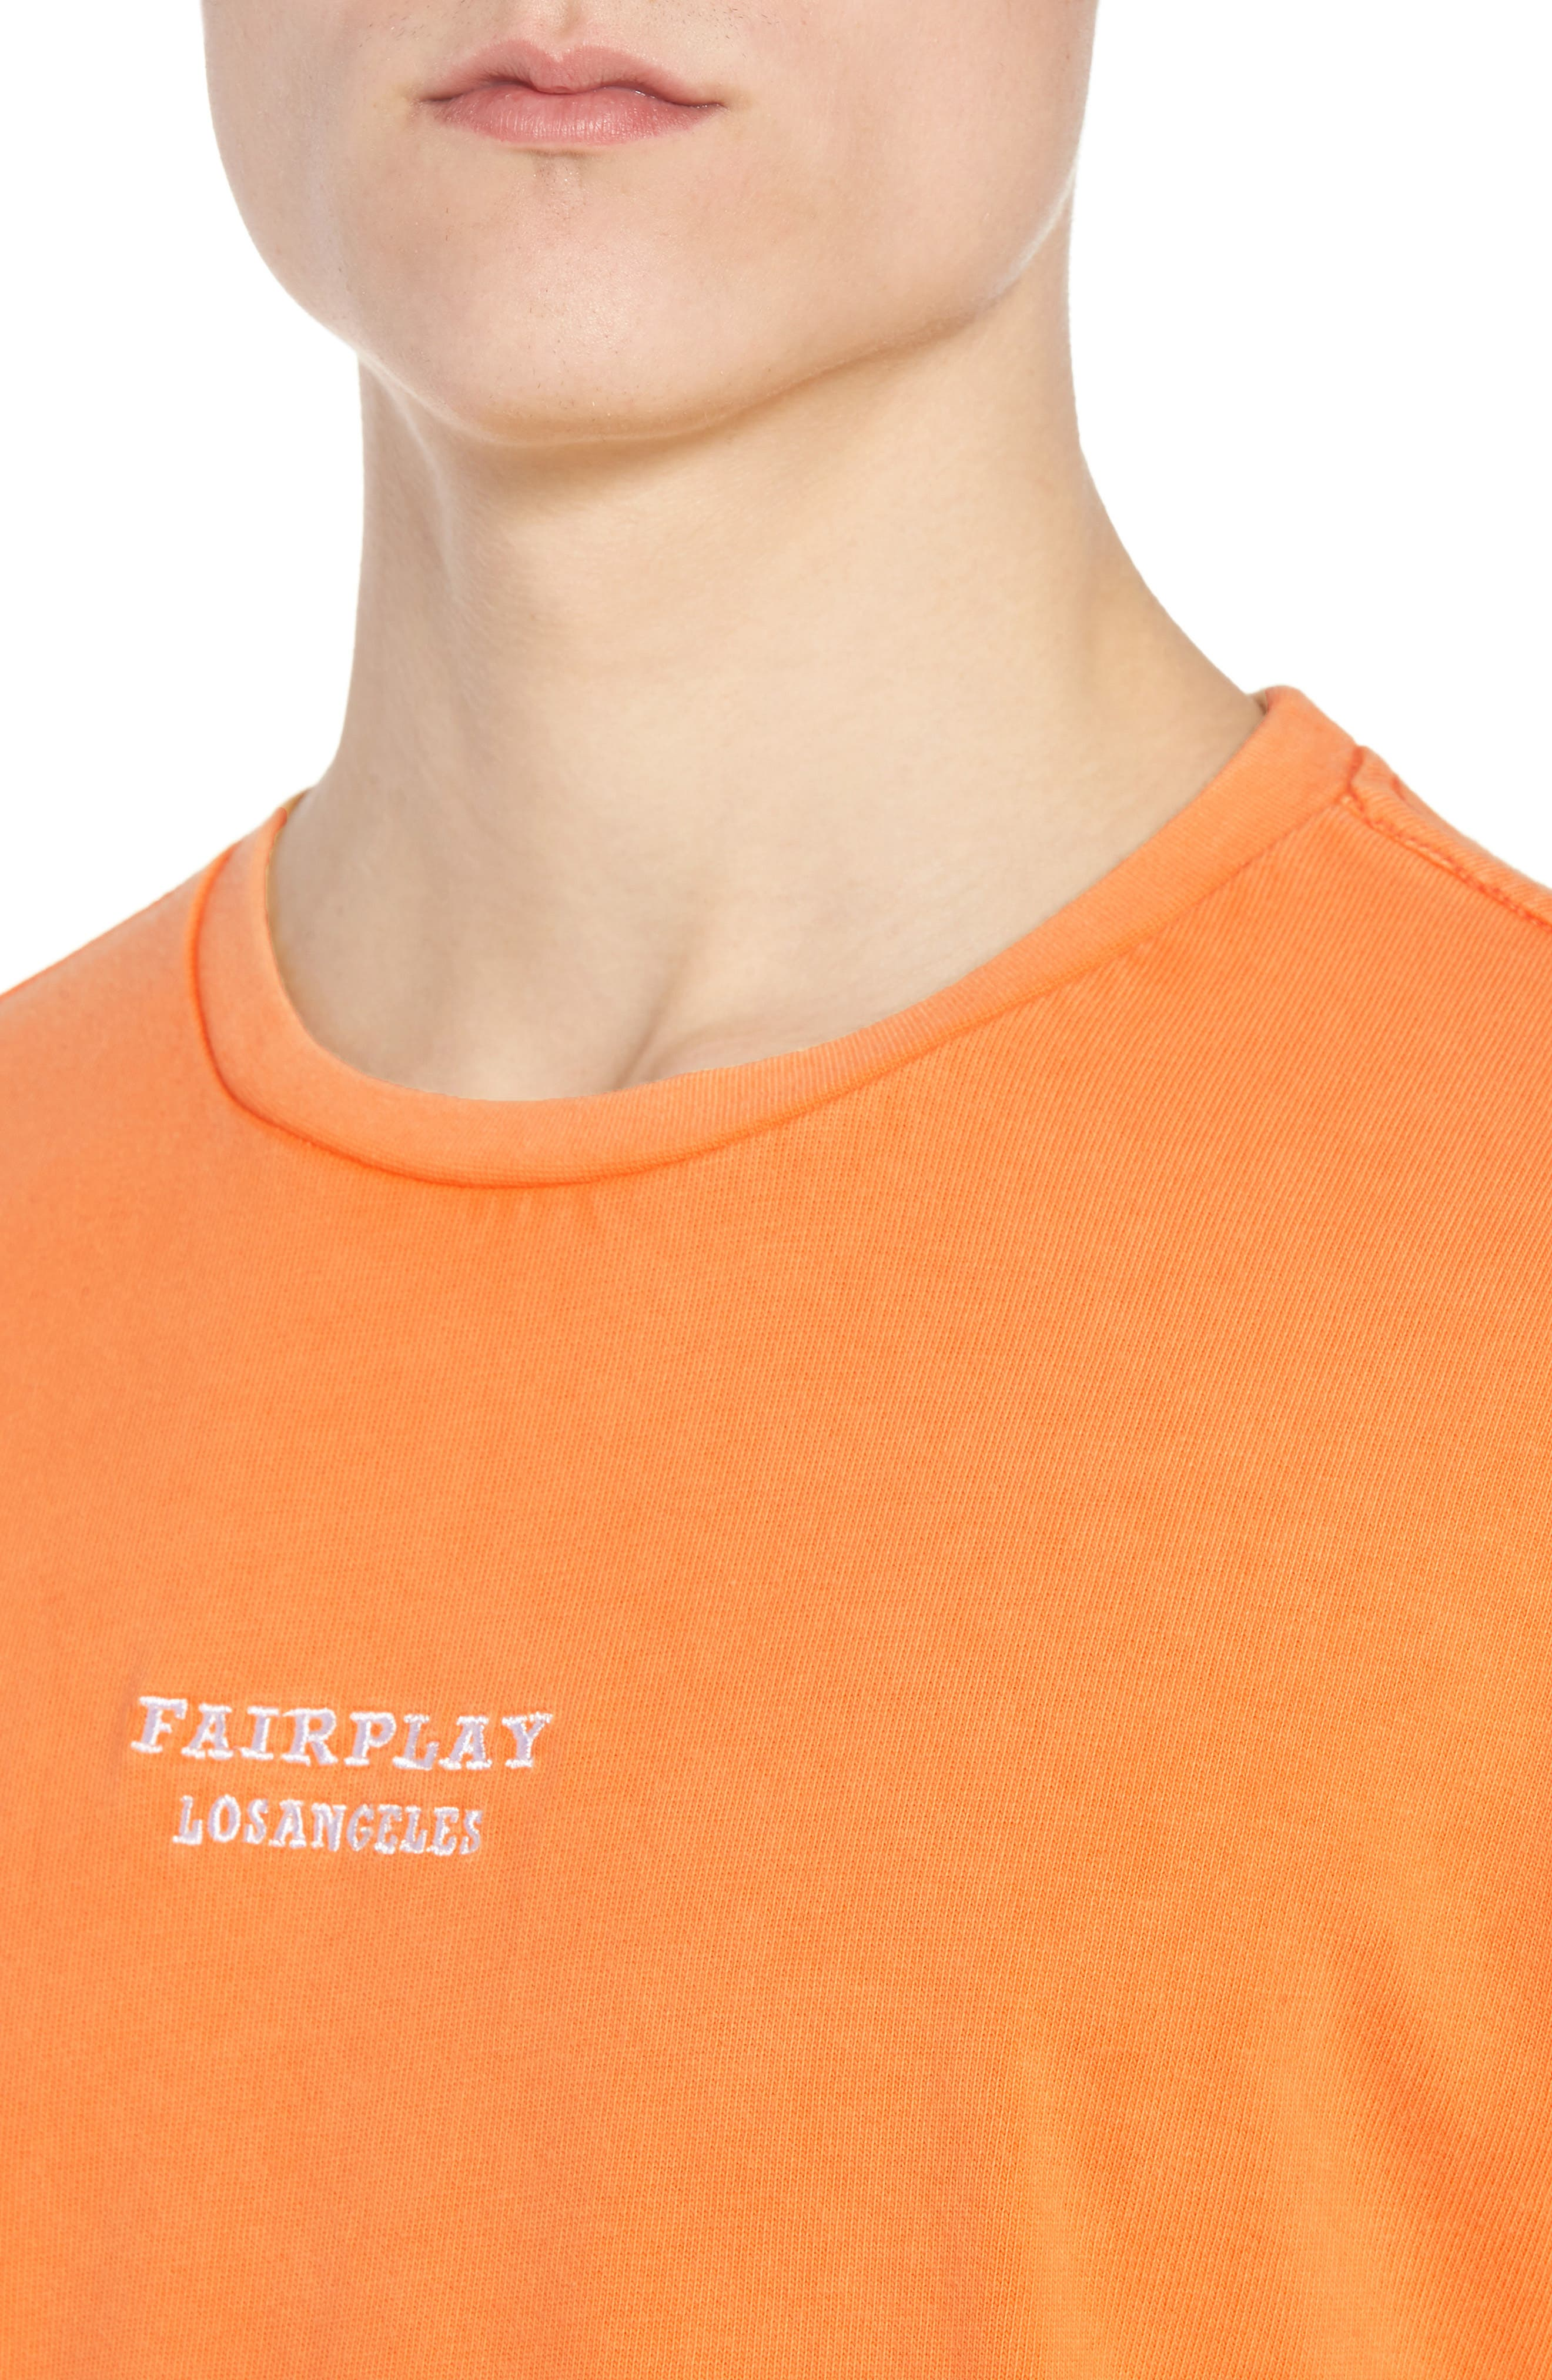 Anderson Sweatshirt,                             Alternate thumbnail 4, color,                             Orange